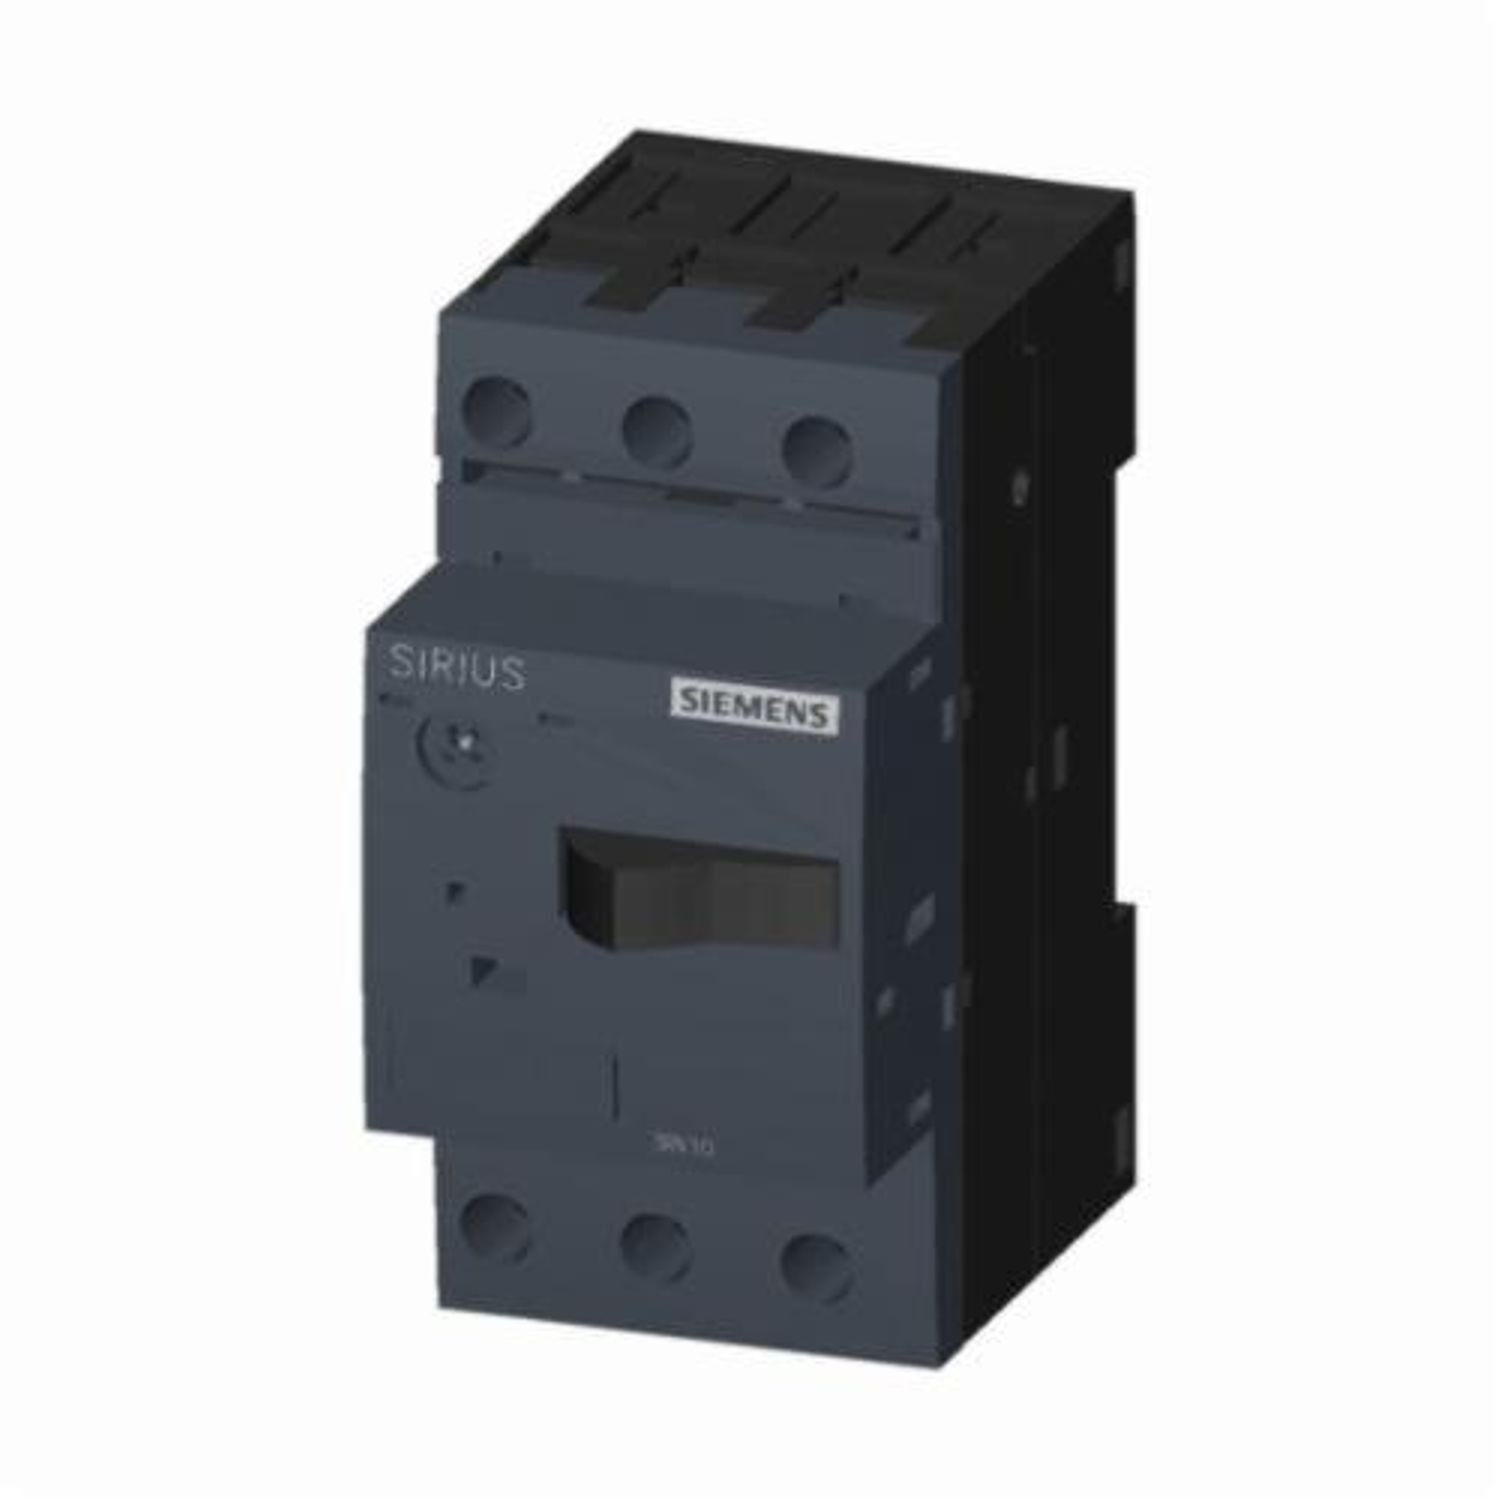 Siemens 3rv1011 1ca10 Type 3rv1 Motor Protection Circuit Breaker For Induction Your Electrical Home 690 Vac 25 A 2 Ka Interrupt 3 Poles